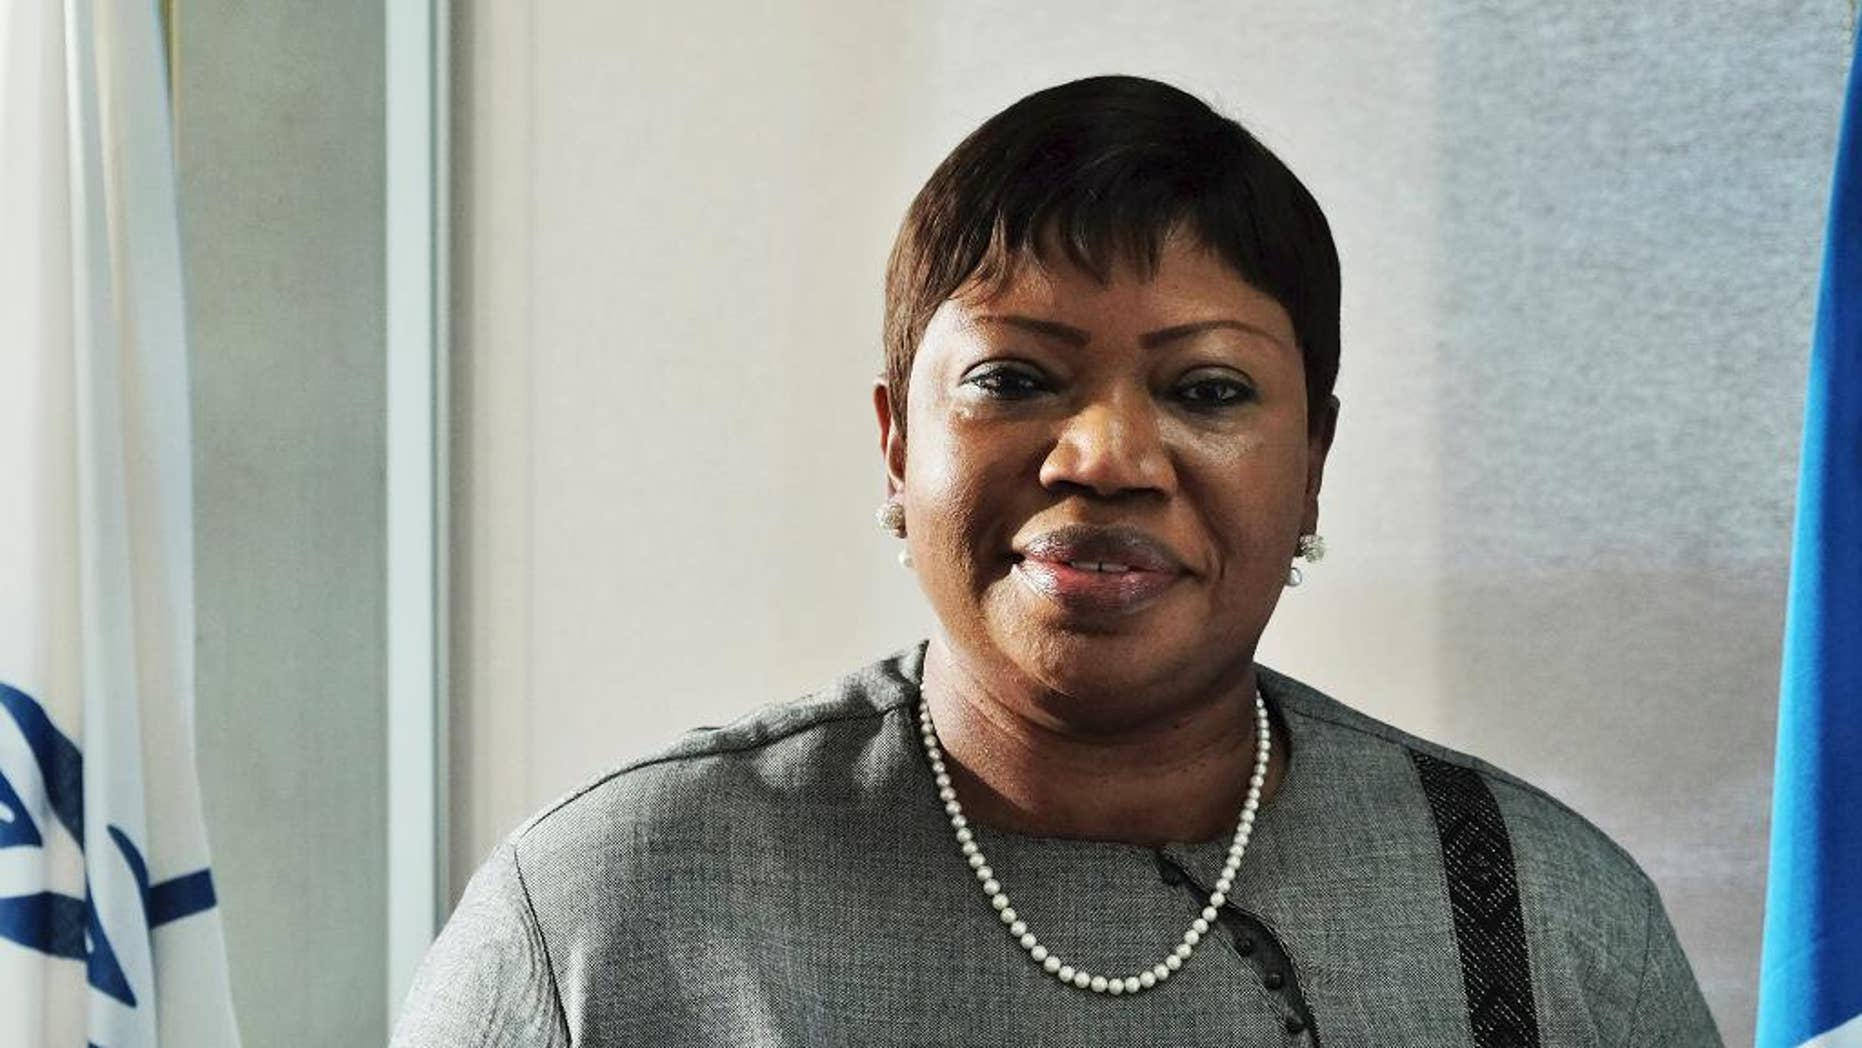 "The International Criminal Court's prosecutor Fatou Bensouda poses for a picture during an interview in The Hague, Netherlands, Tuesday, Nov. 22, 2016. Bensouda says it is a ""regression"" for African nations, including her own home country of Gambia, to quit the court and says the continent should work together with her office to end impunity for atrocities. (AP Photo/Mike Corder)"